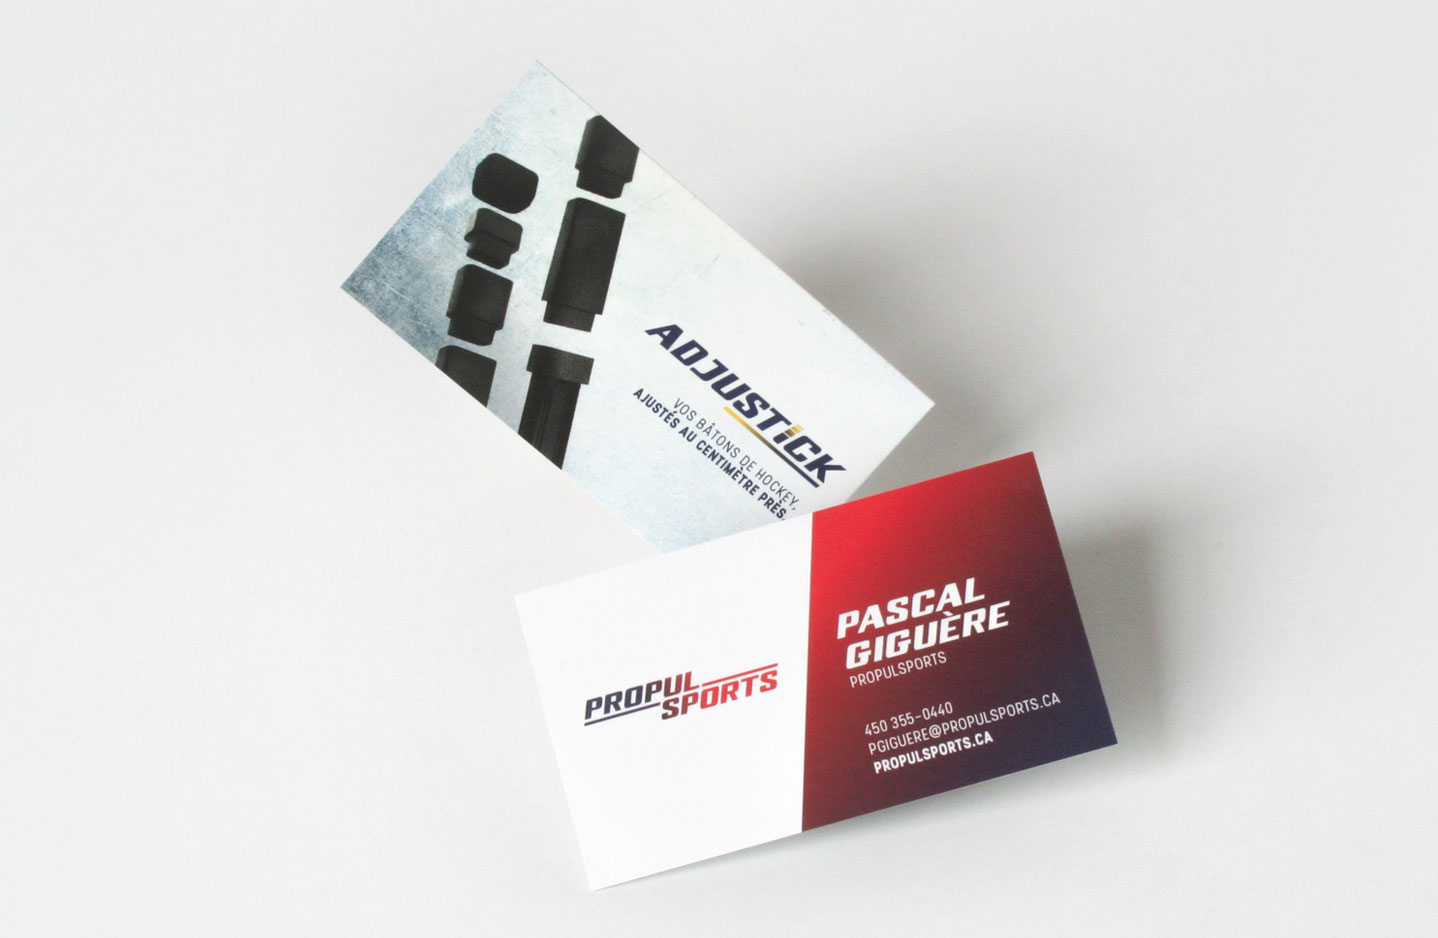 propulsports-cartes-affaires